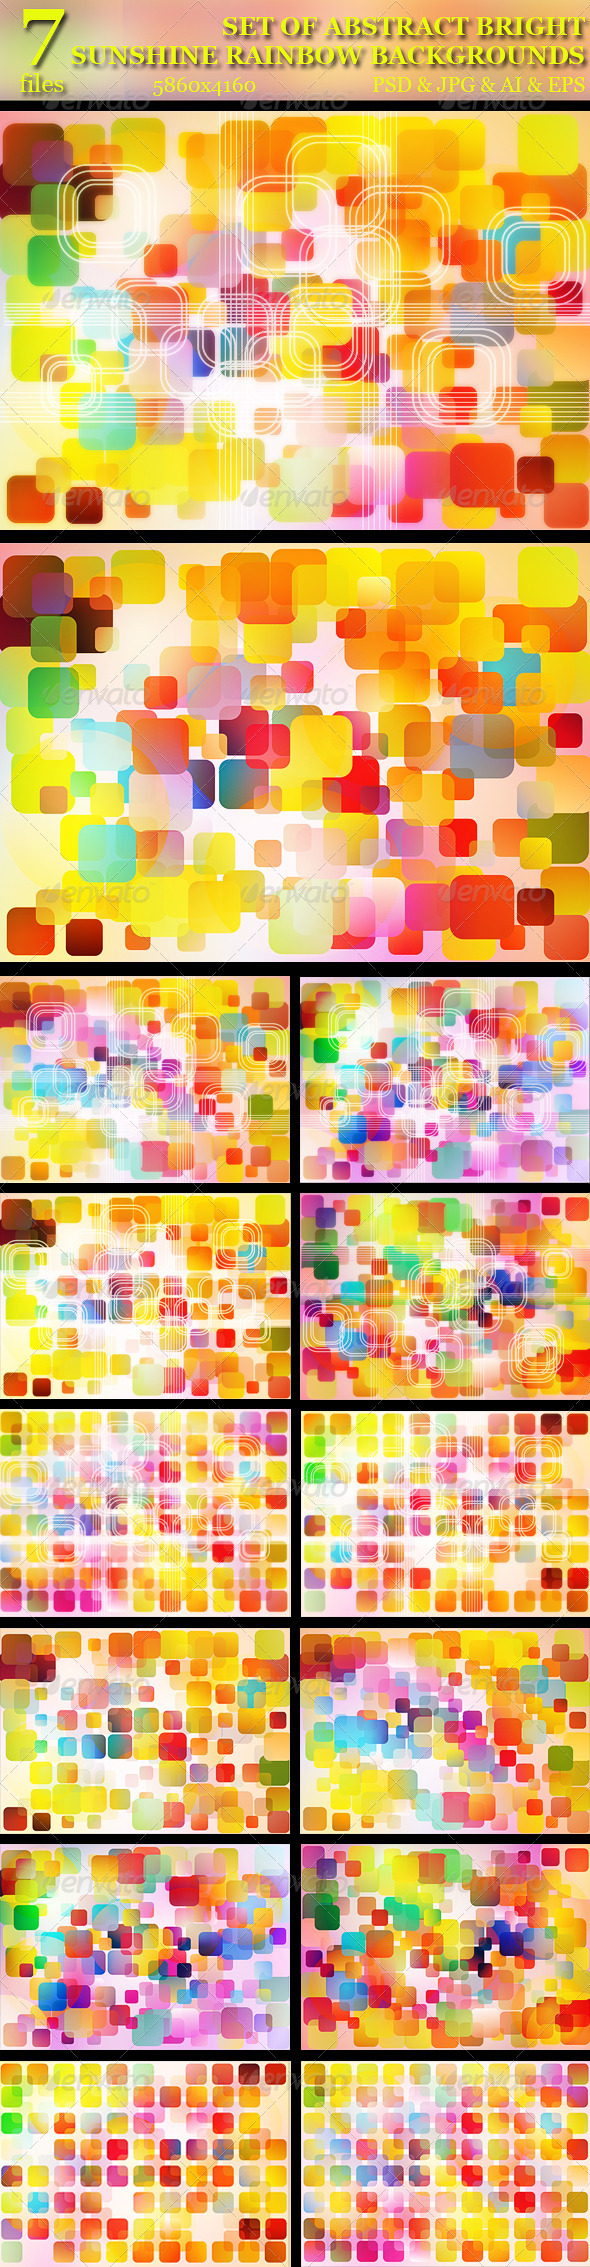 GraphicRiver Set of 7 Abstract Sunshine Rainbow Backgrounds 5185000